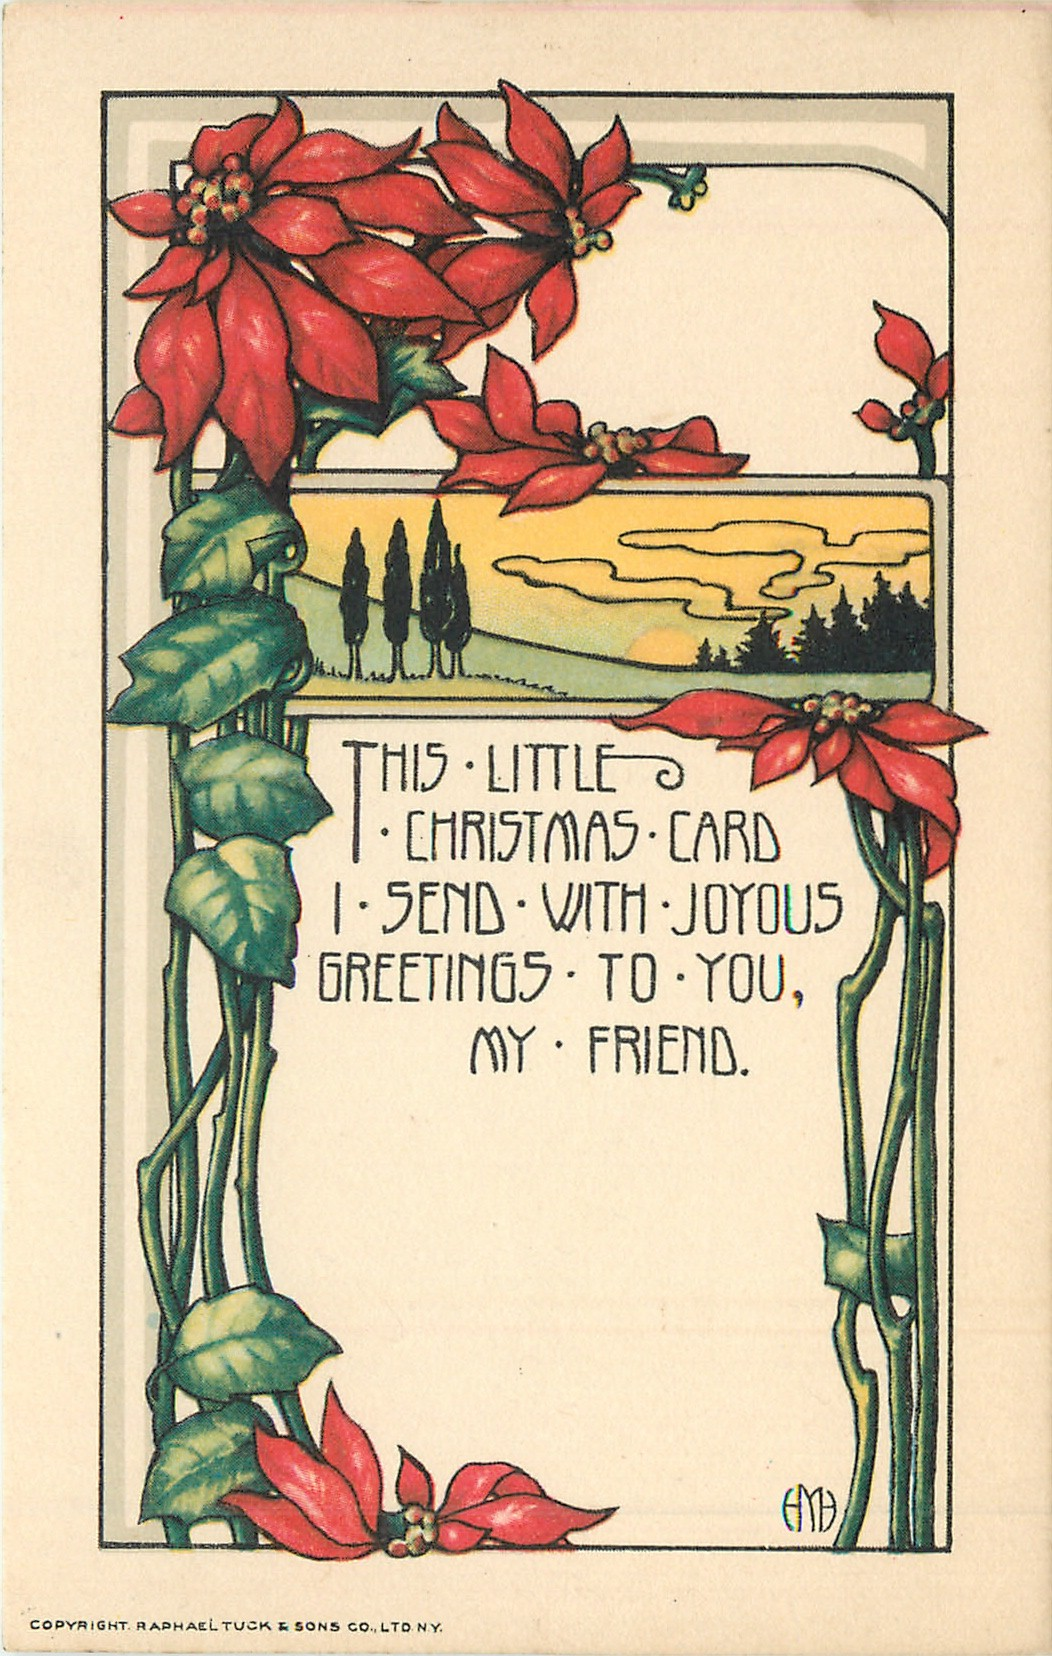 This Little Christmas Card I Send With Joyous Greetings To You My